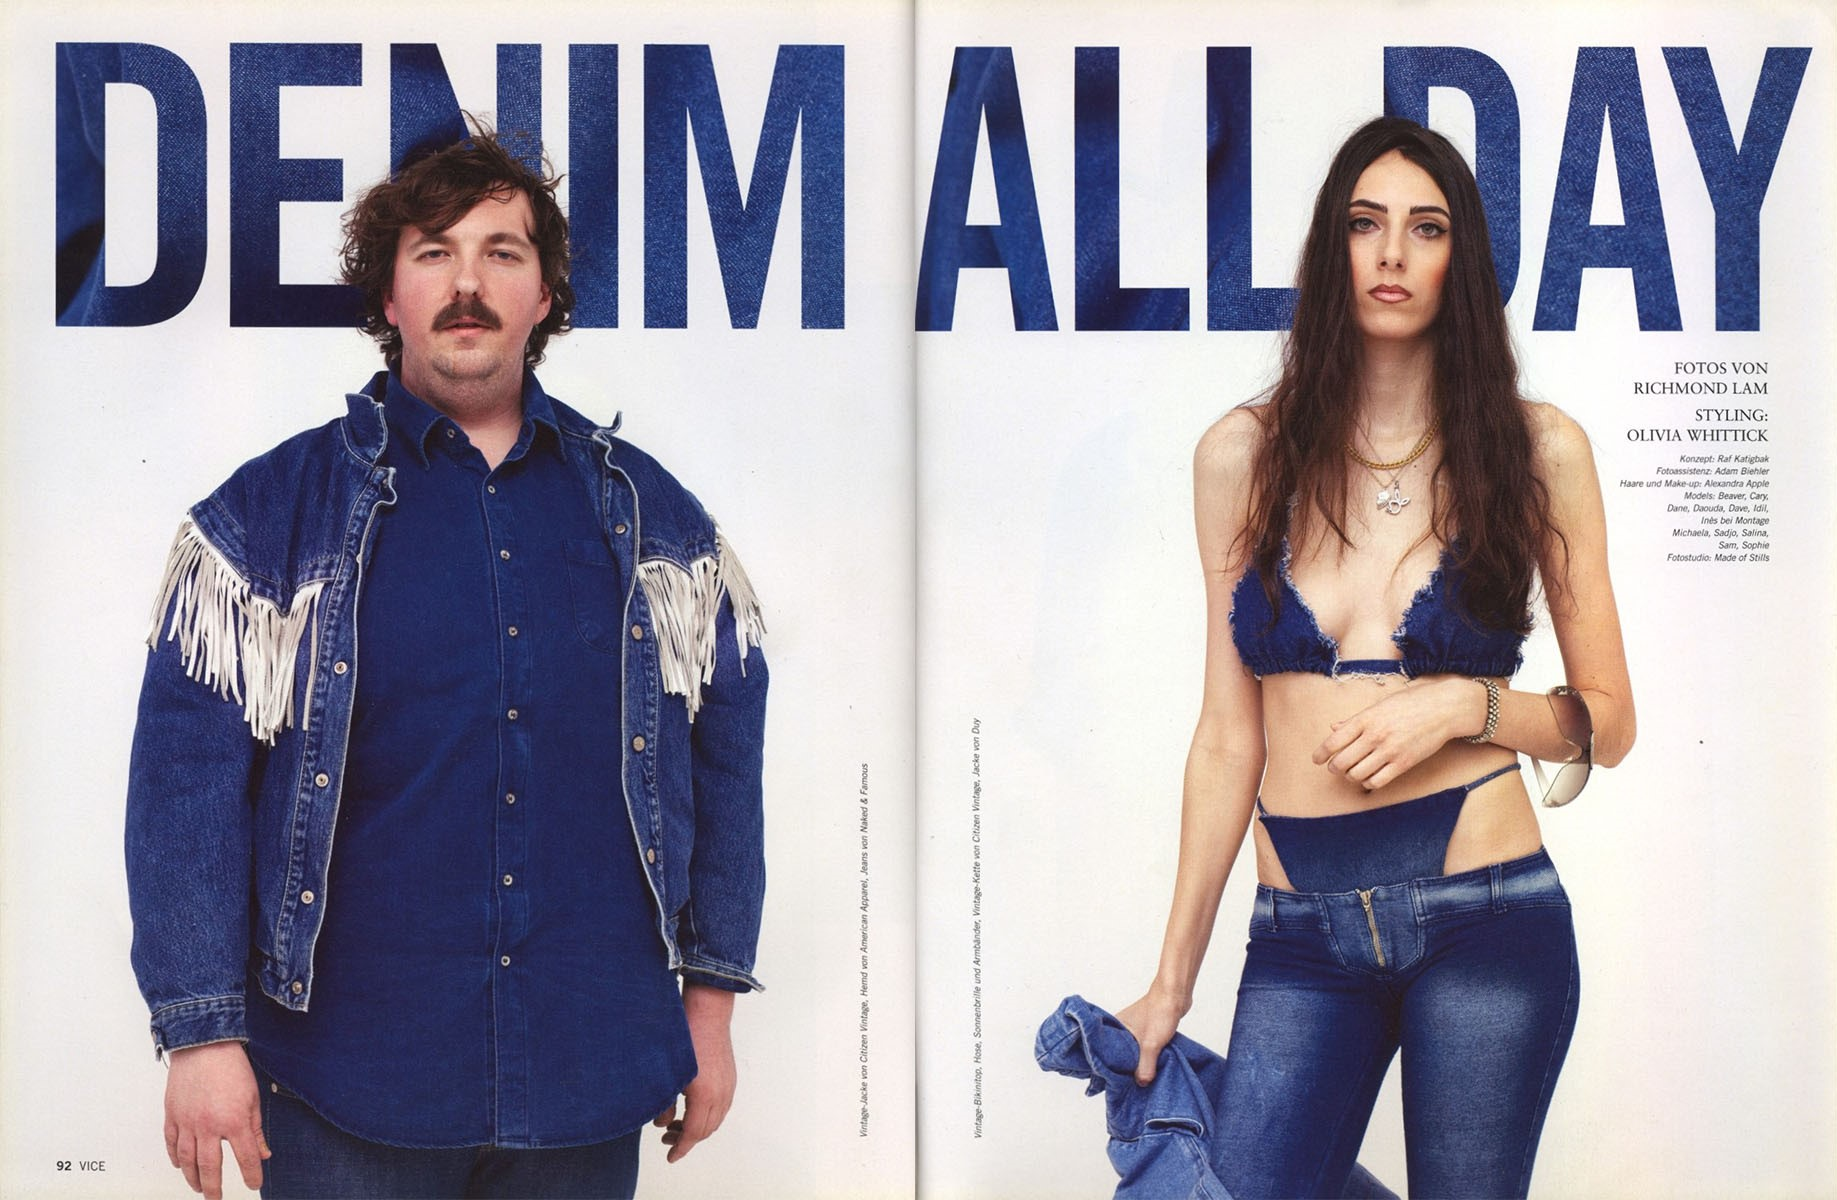 DENIM ALL DAY | PHOTOGRAPHY | VON RICHMOND LAM | VICE MAGAZINE | VOL. 9 NR.2 |  THE FASHION ISSUE | MARCH 2013